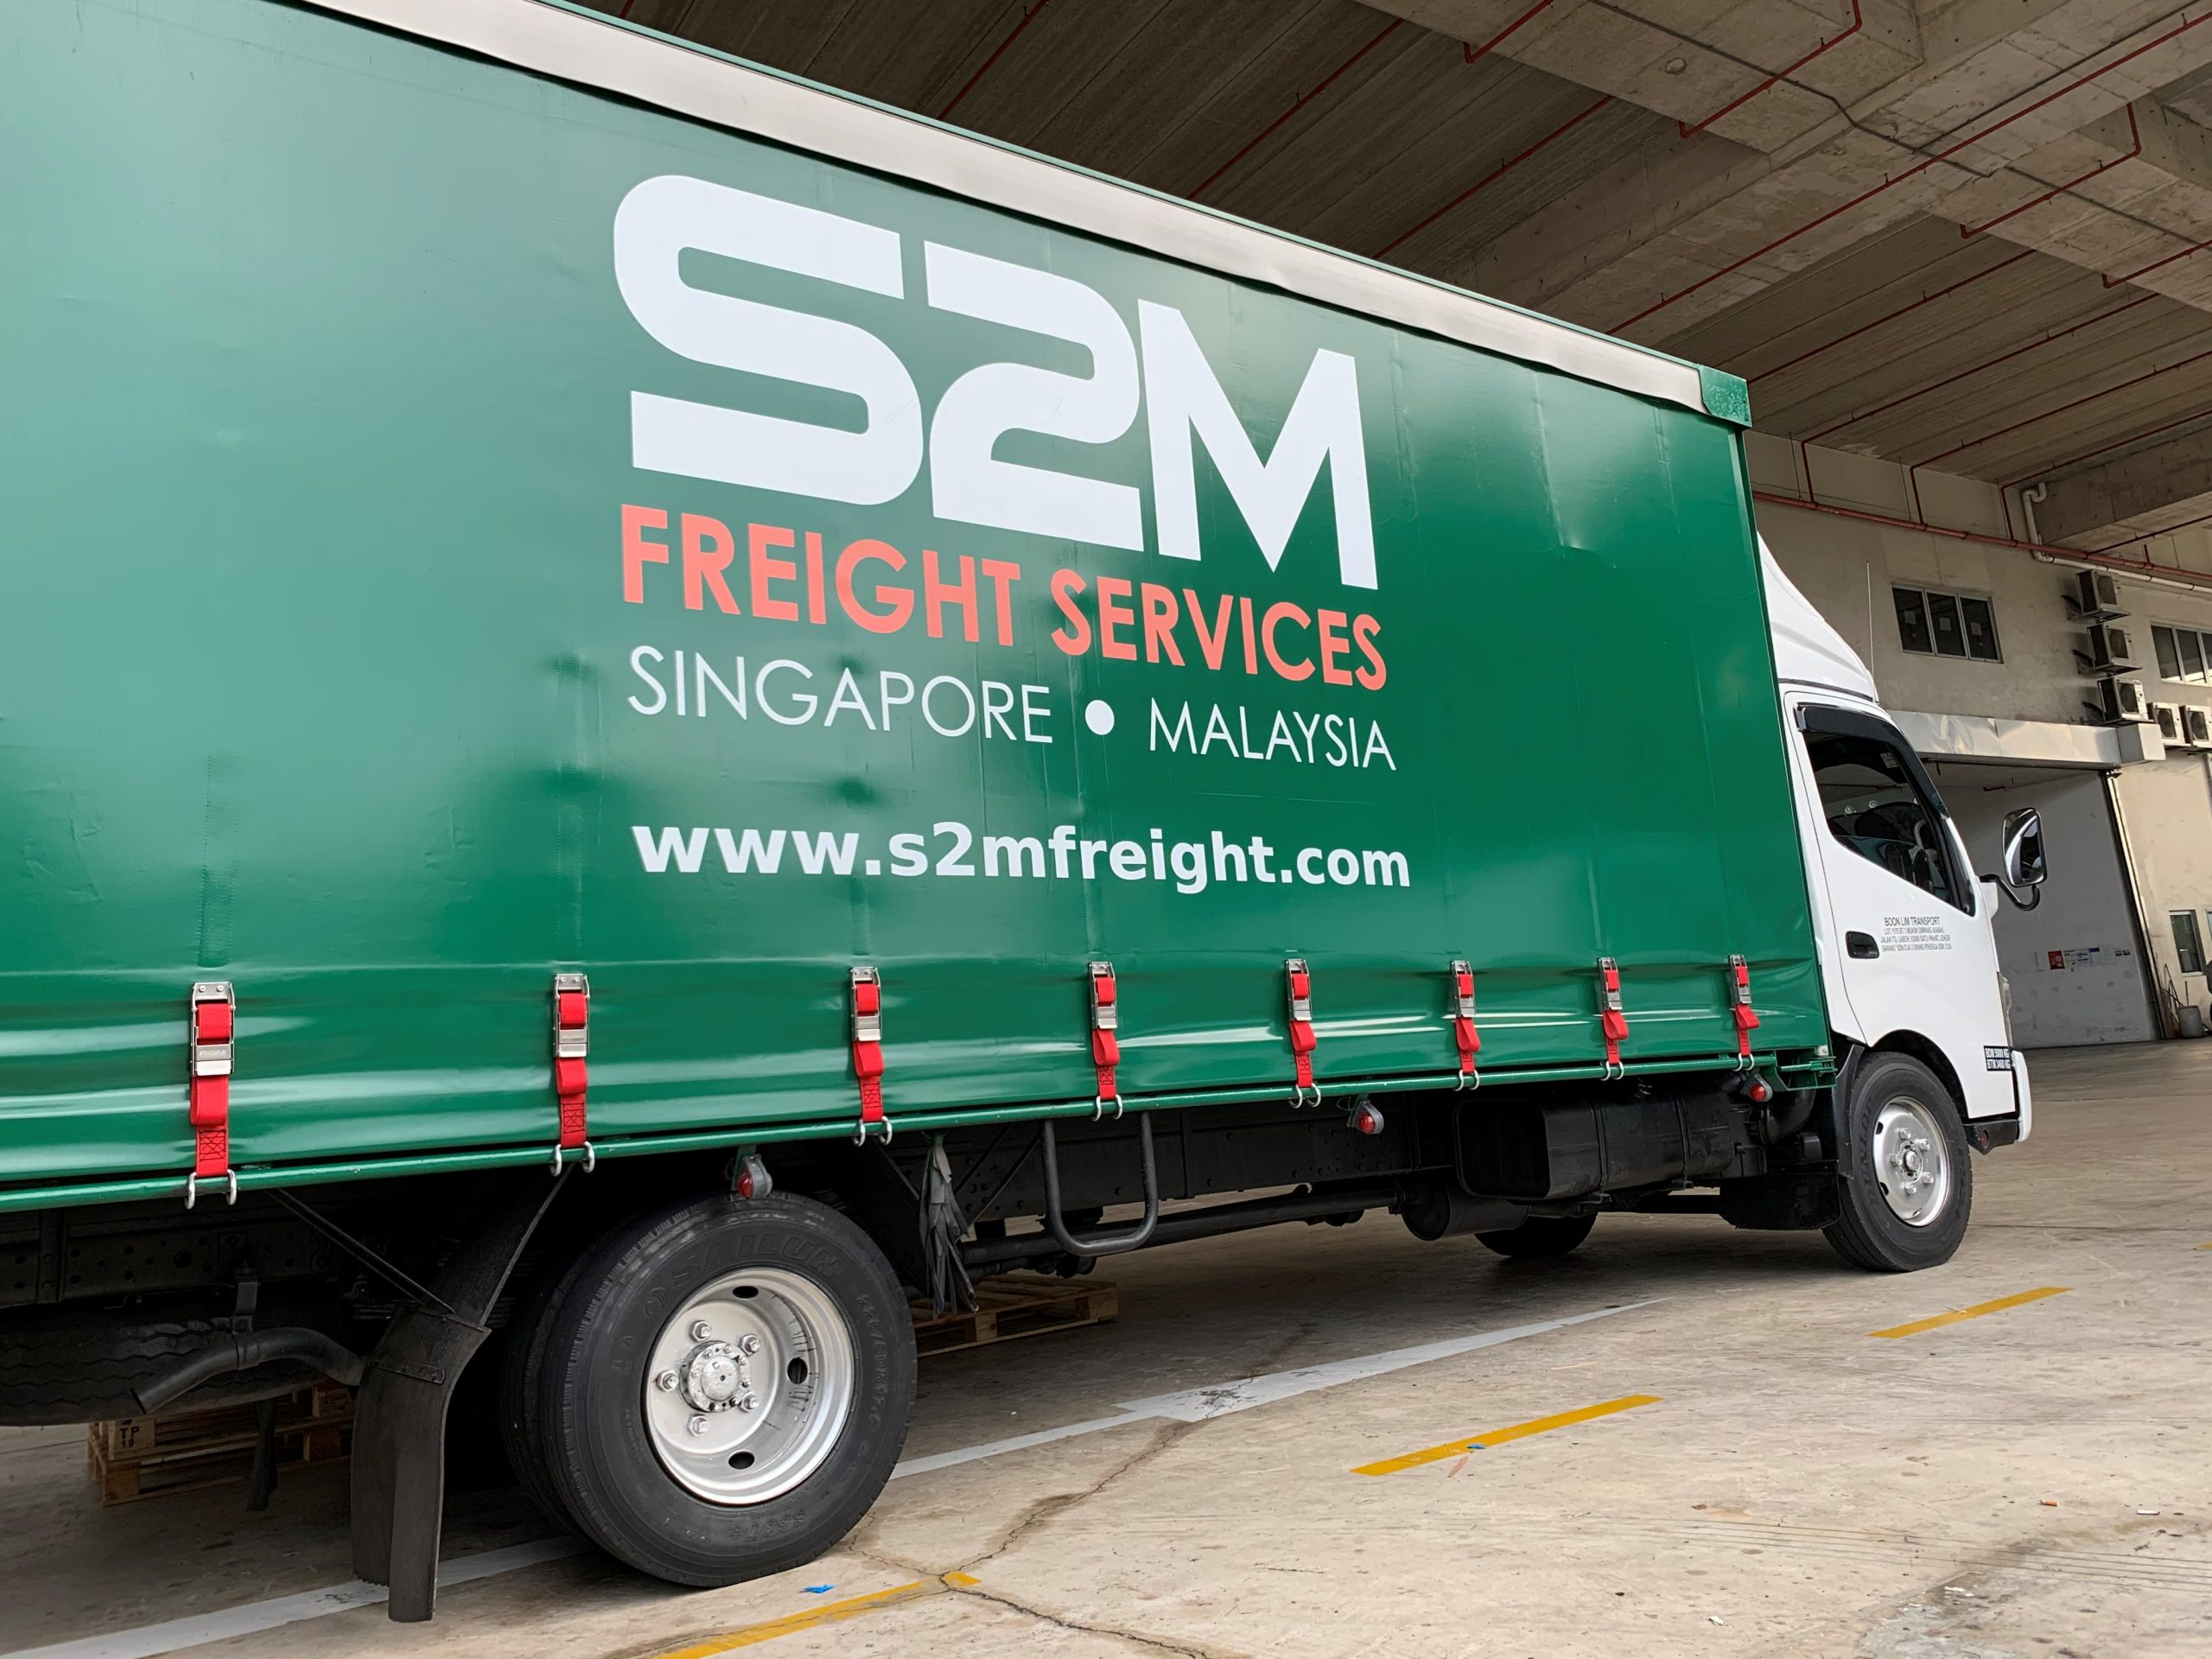 s2m freight lorry truck